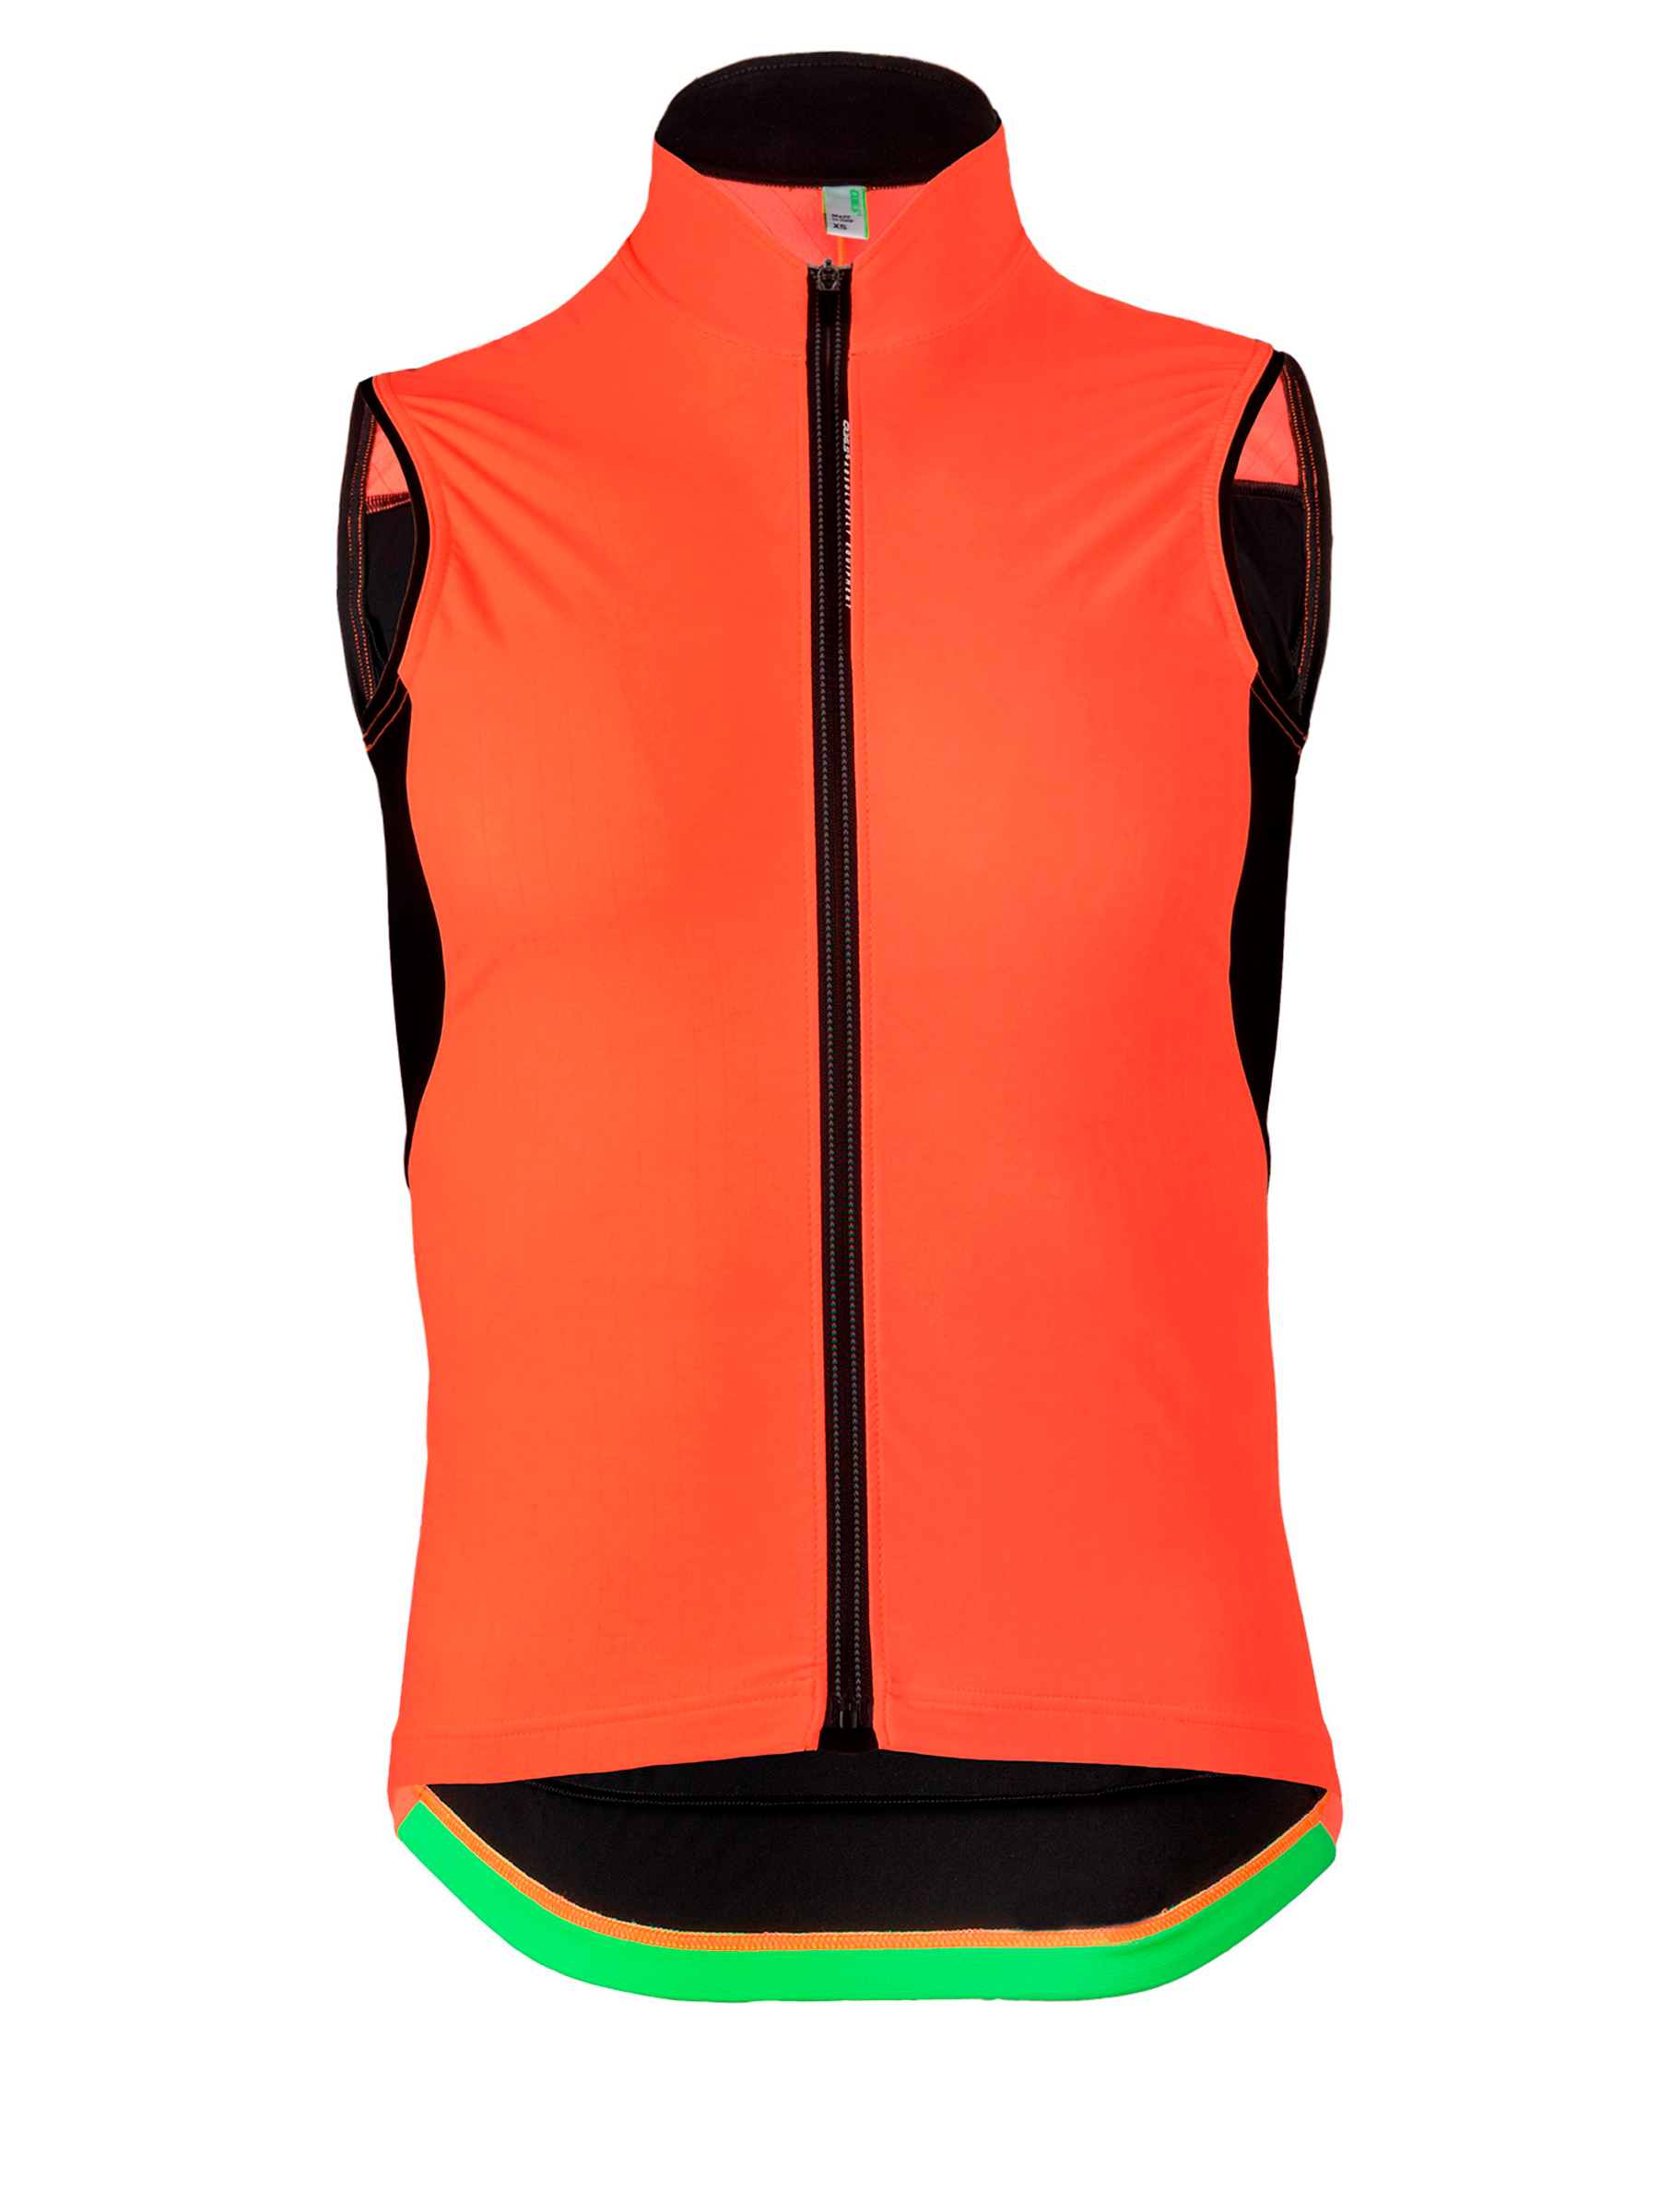 Mens cycling vest L1 Essential orange Q36.5